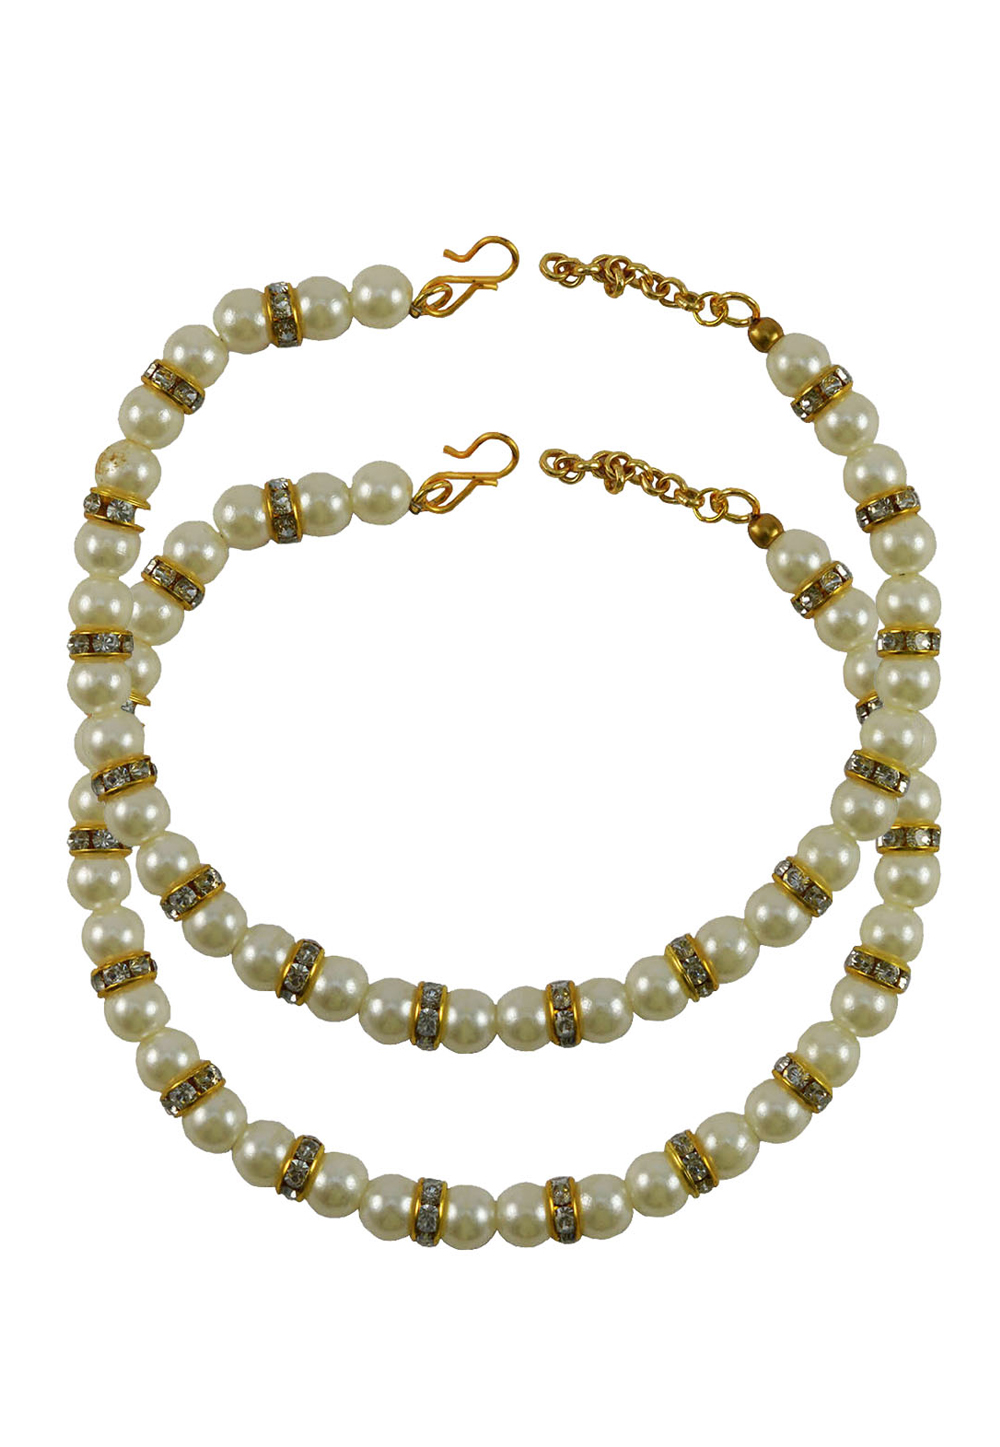 White Brass Gold Plated Anklets 171373